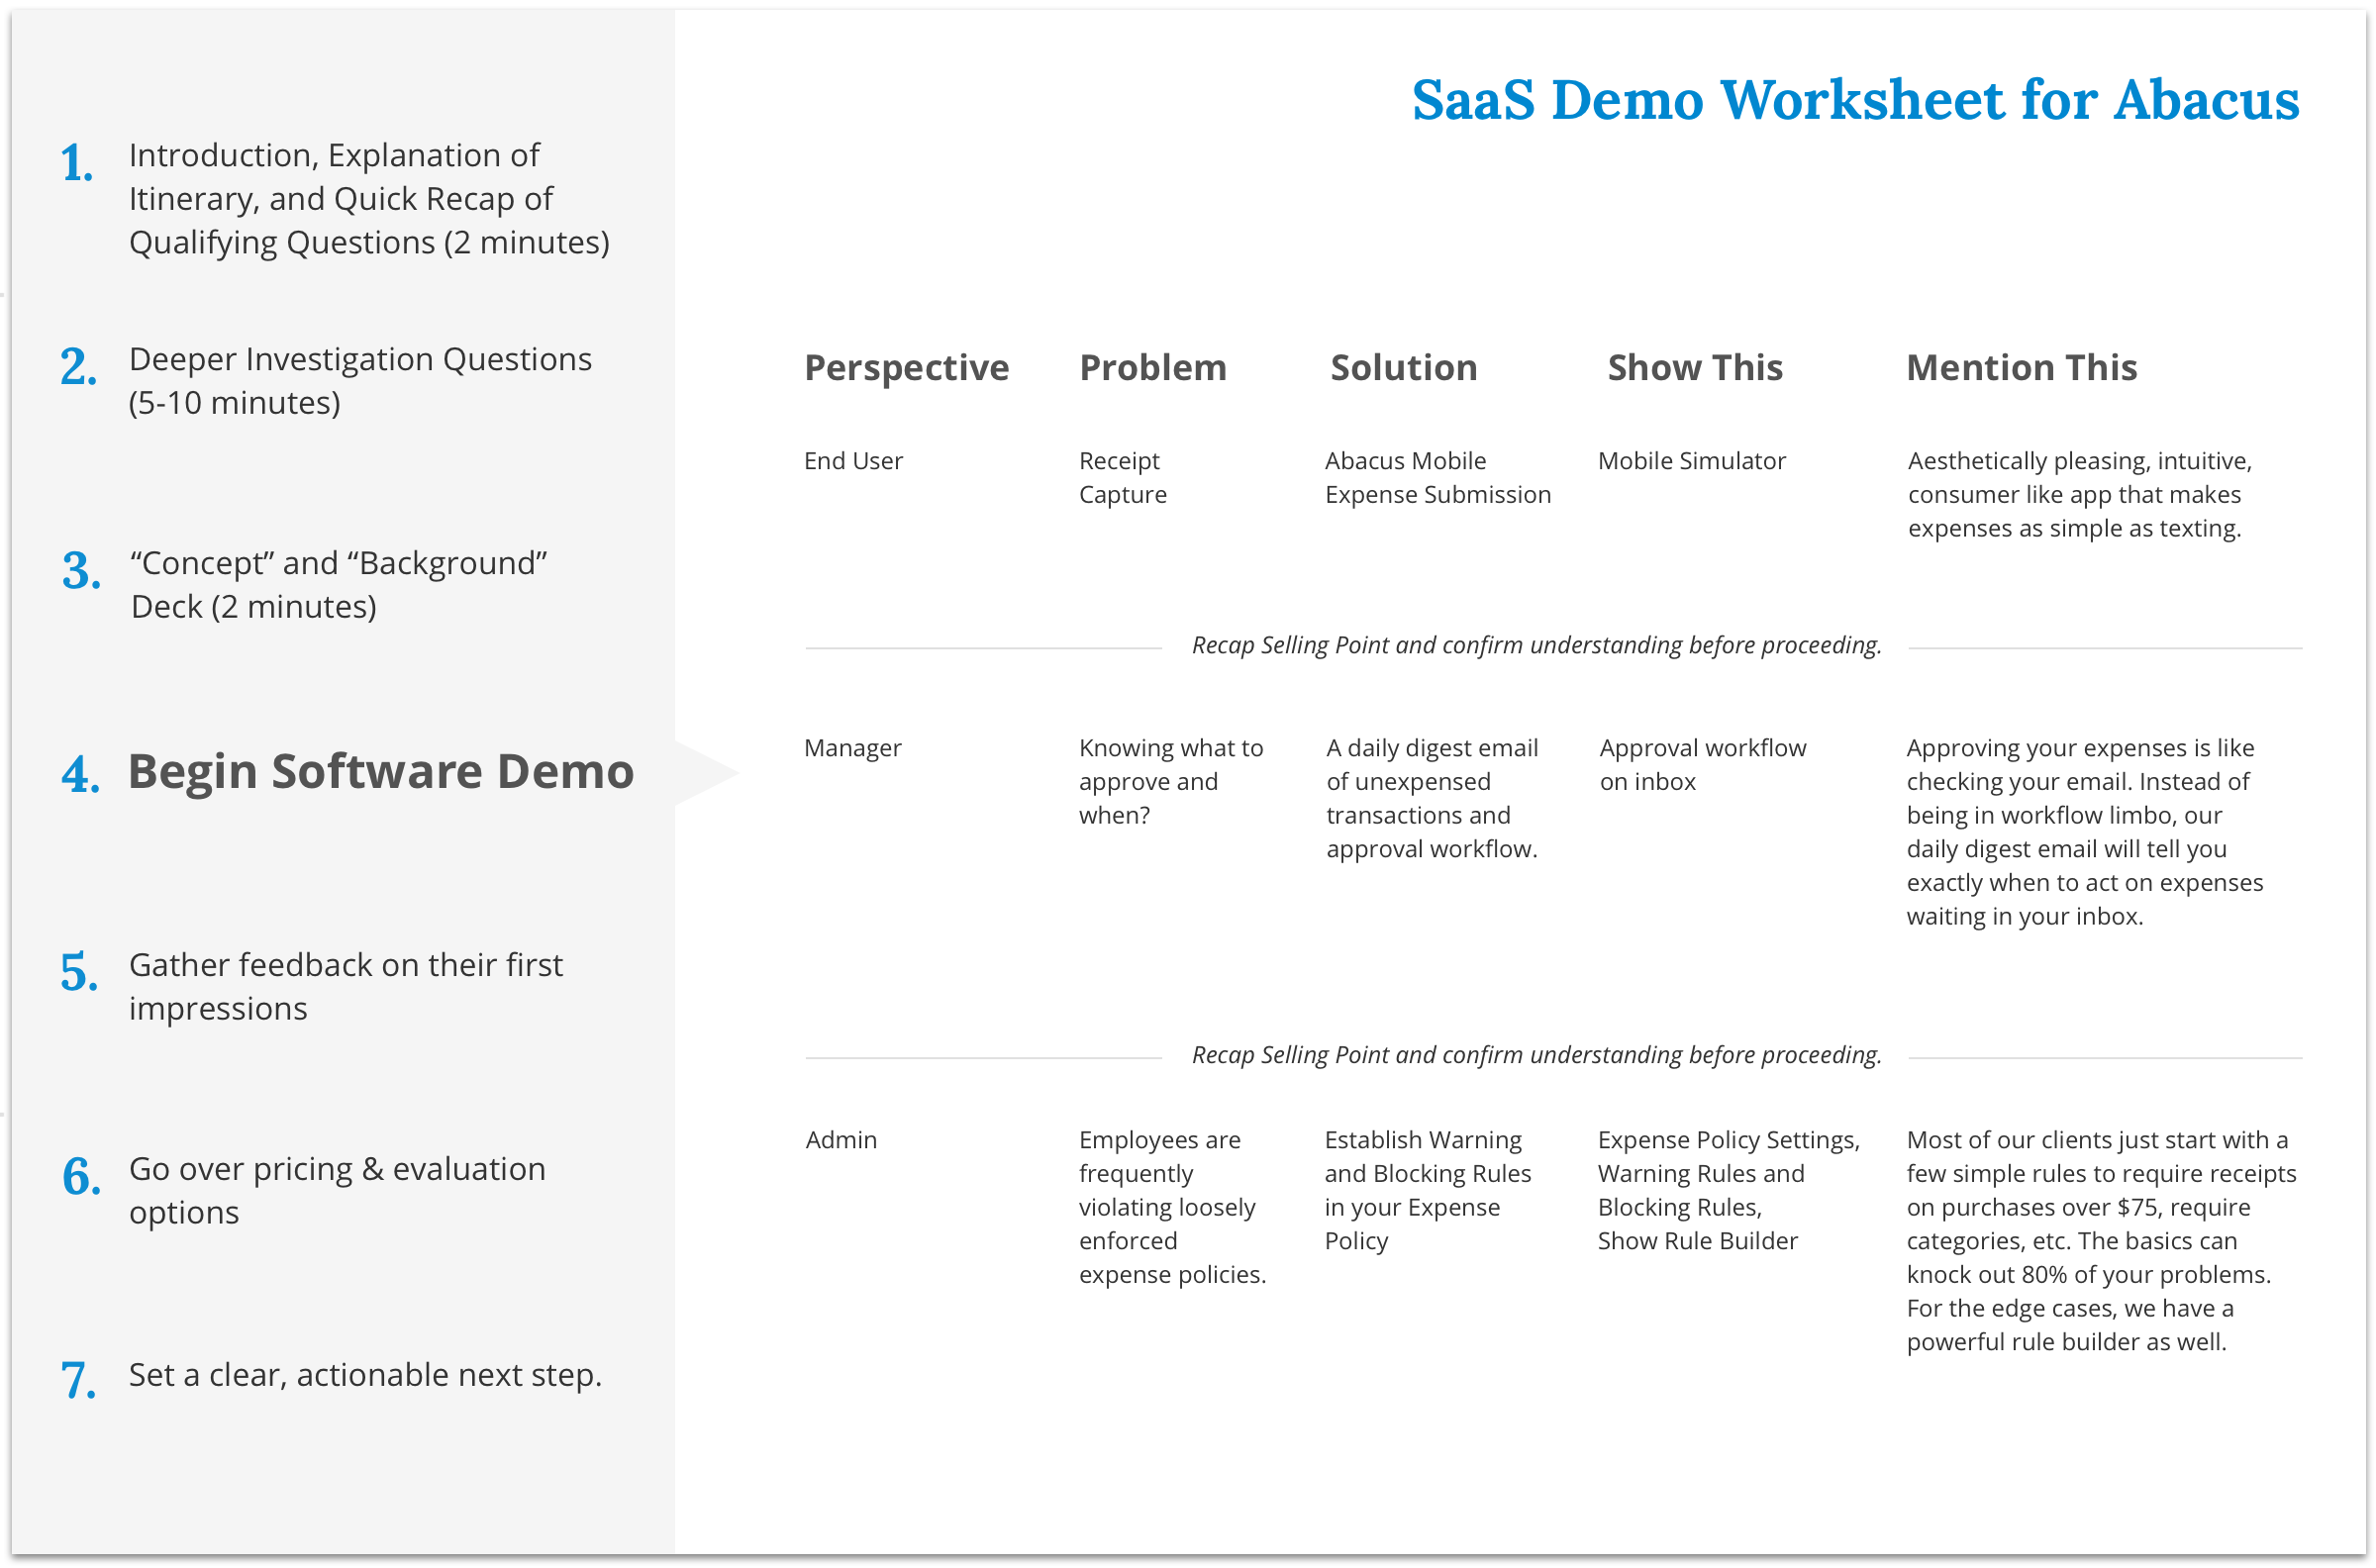 SaaS-demo-worksheet-Abacus-sh